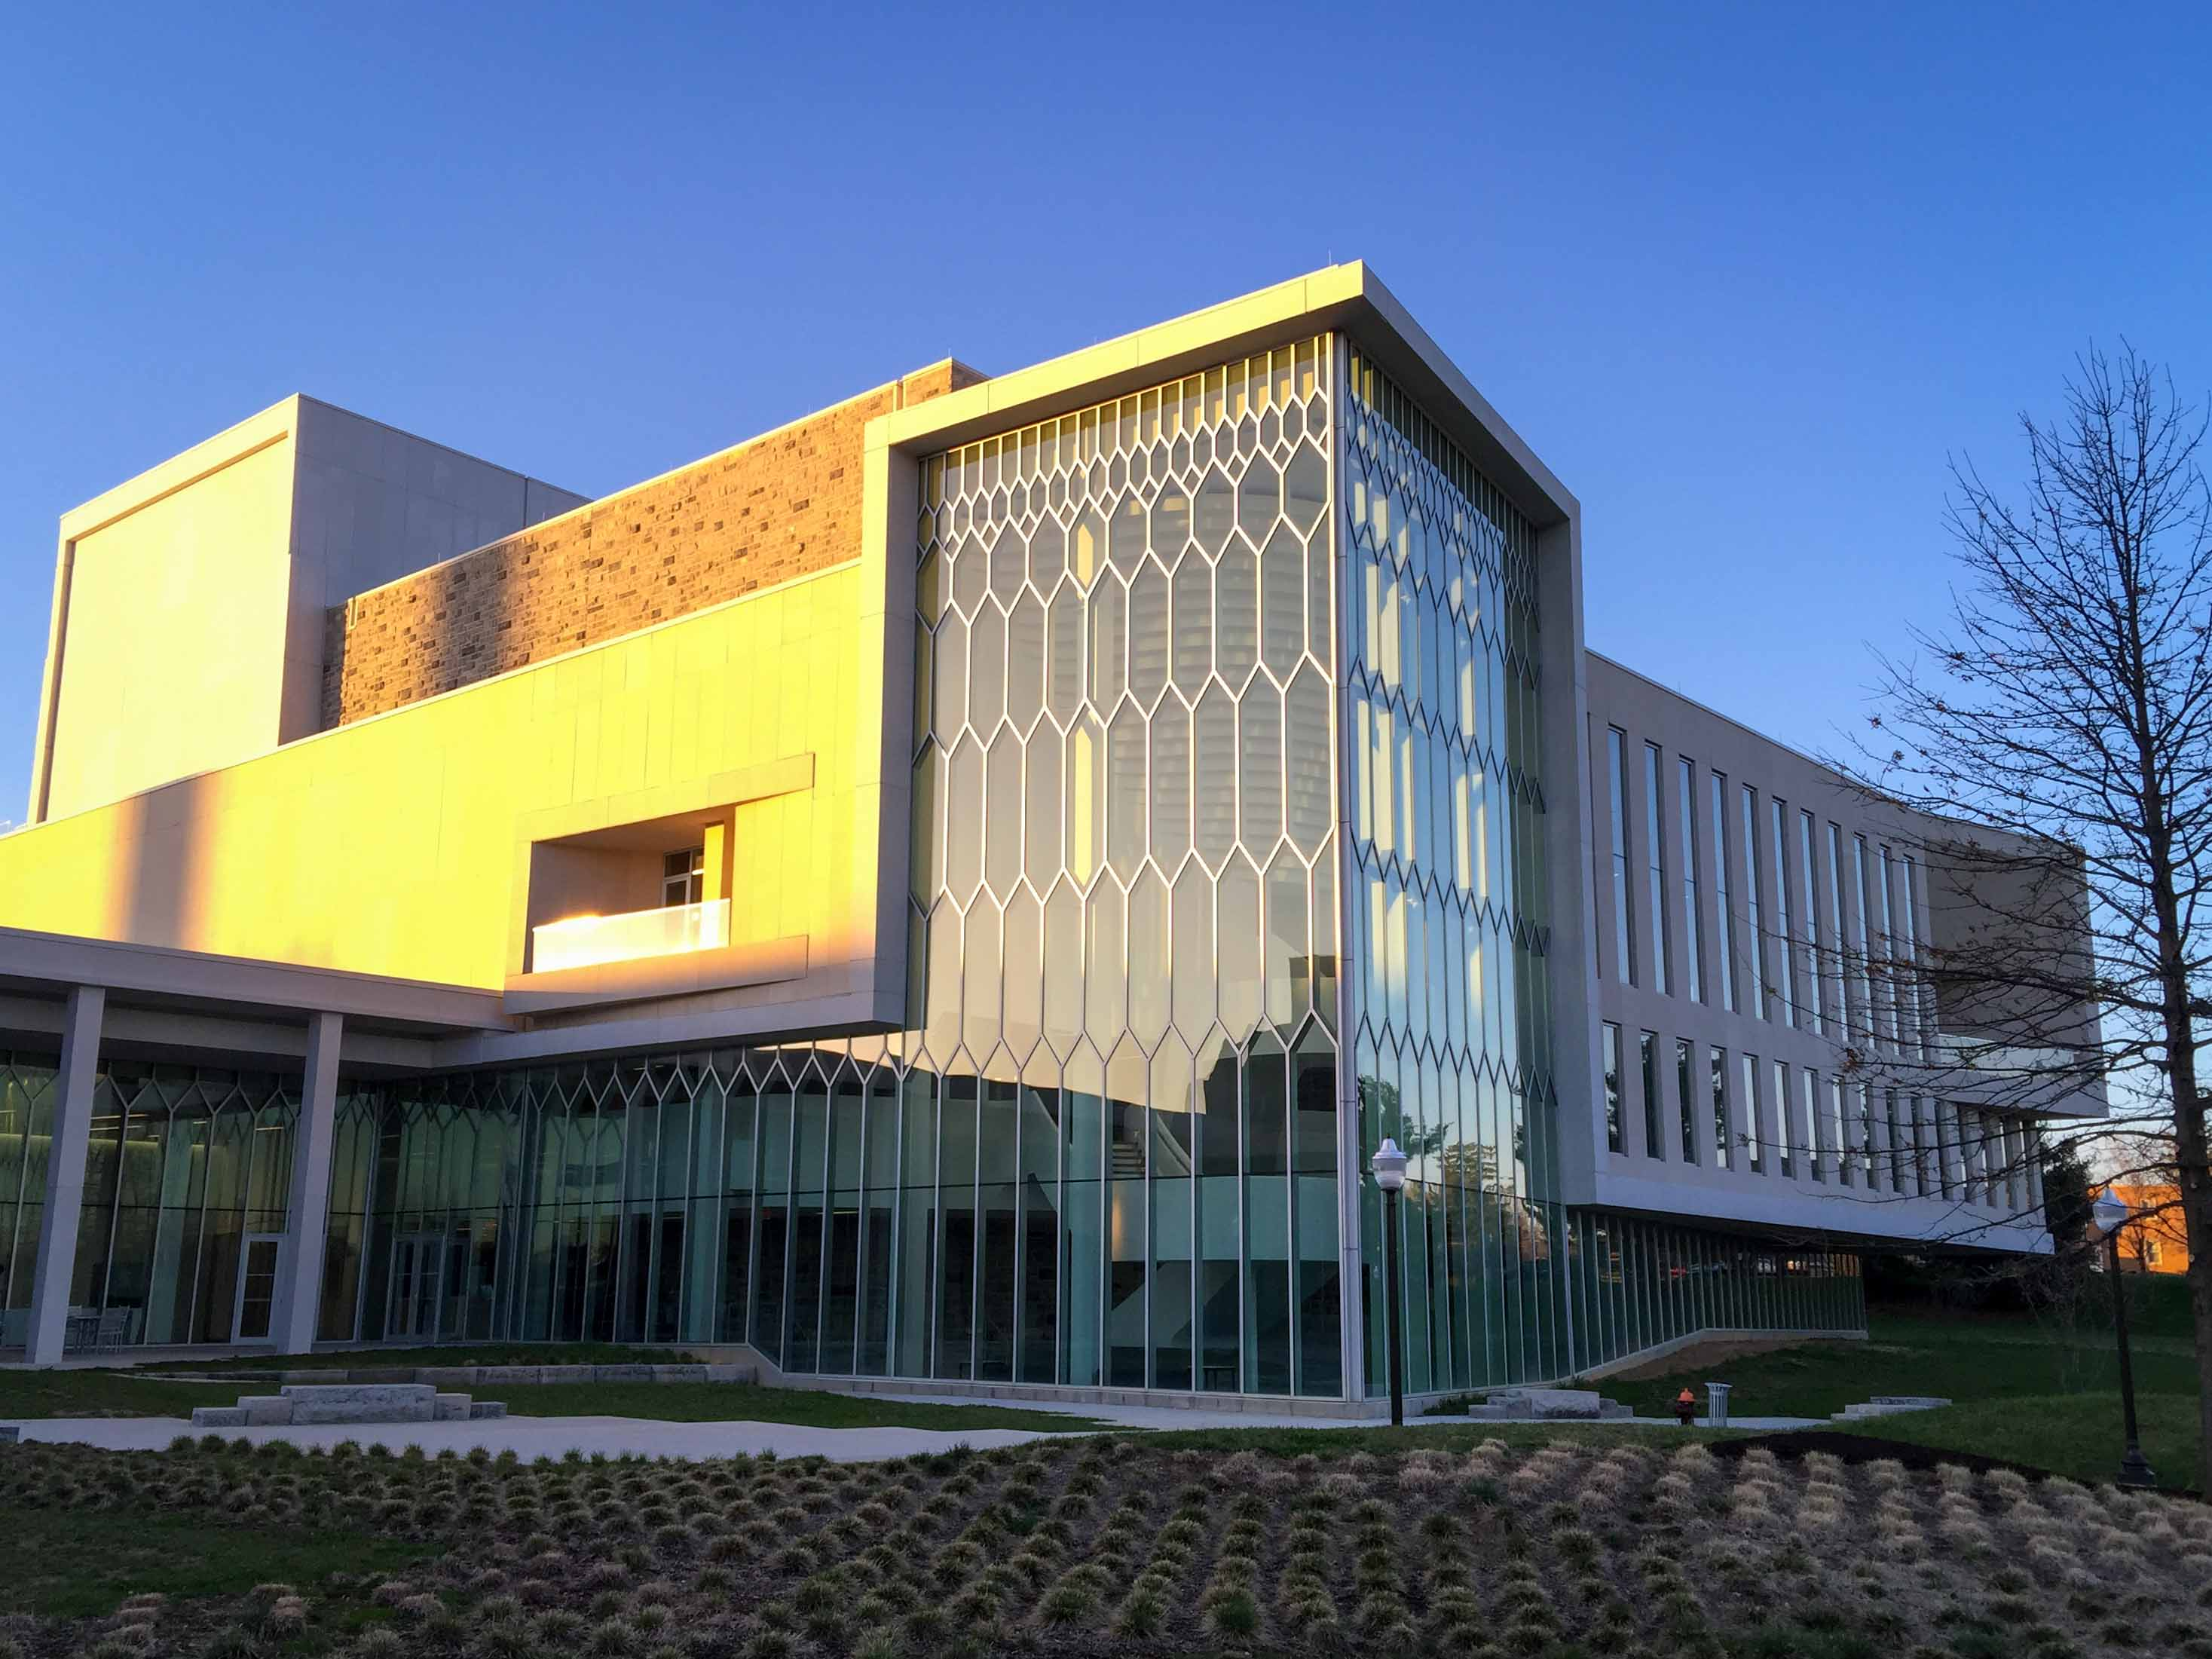 The Moss Arts Center is located on the campus of Virginia Tech; image by Smash the Iron Cage - Own work, CC BY-SA 4.0, https://commons.wikimedia.org/w/index.php?curid=39888408